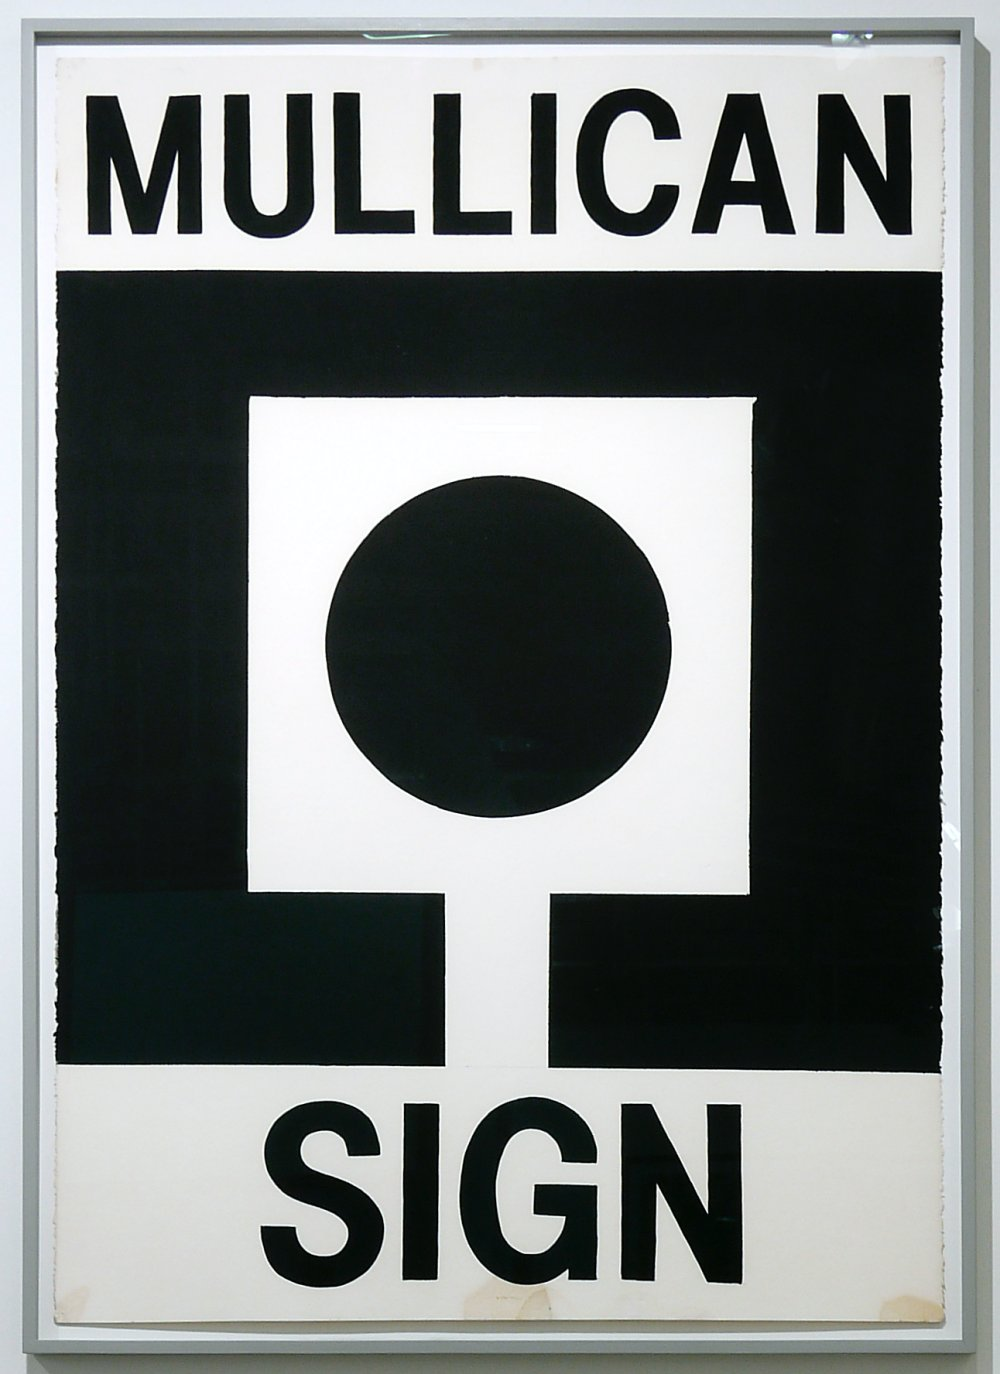 Untitled (Mullican poster: Sign)